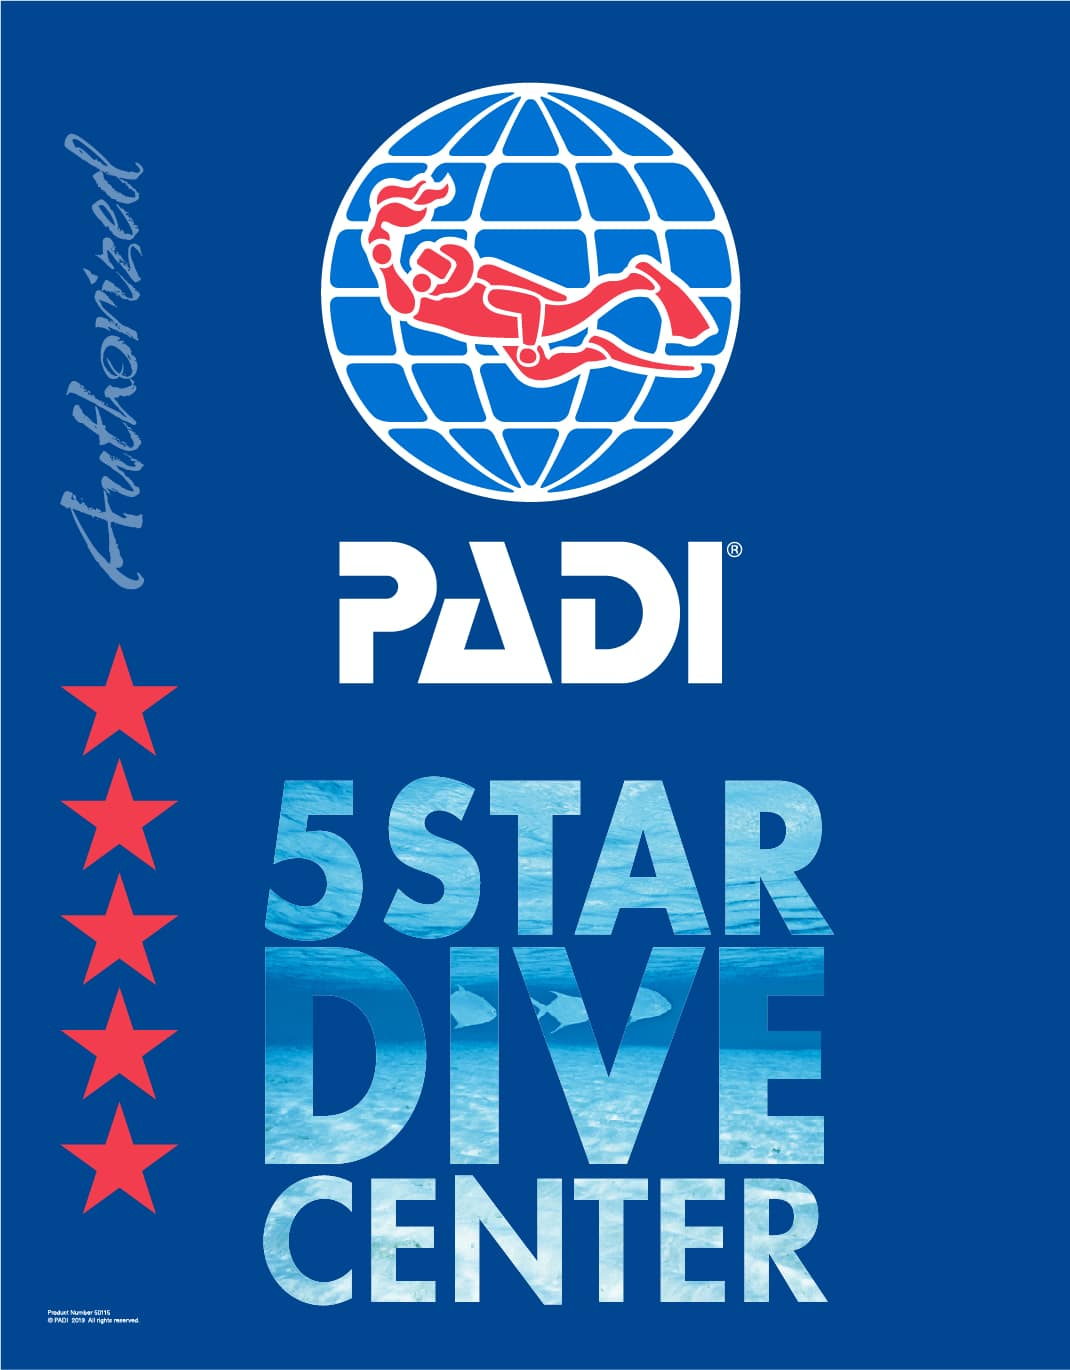 PADI 5 star dive centre logo